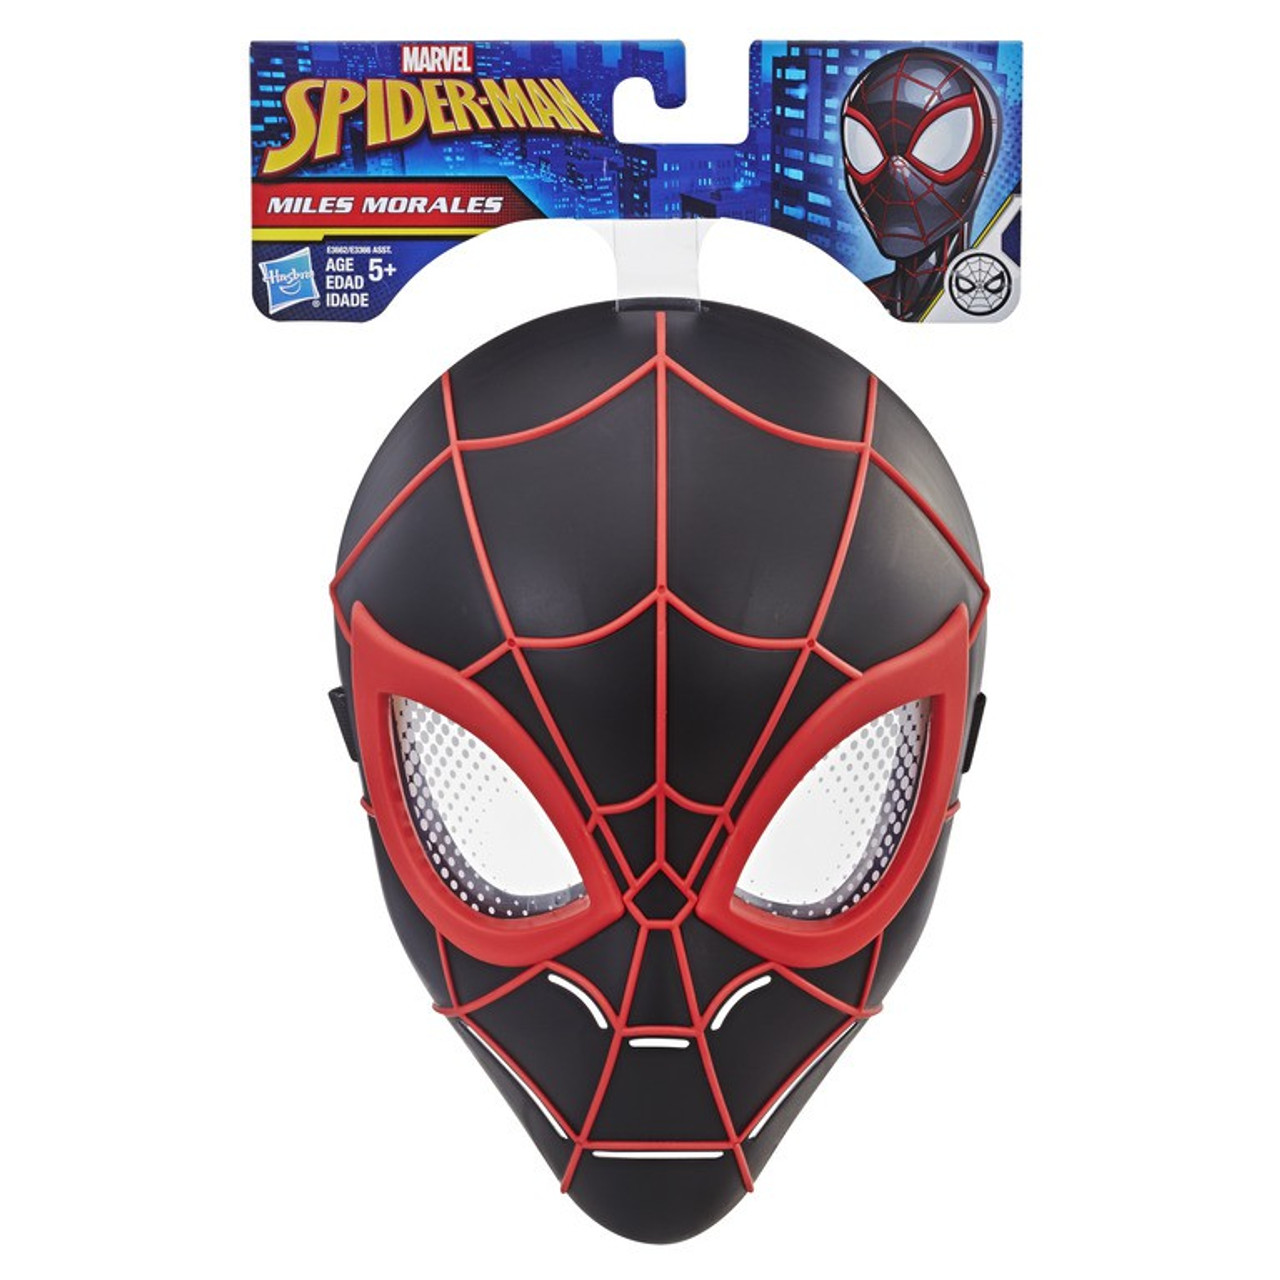 9674fe91536 Marvel Spider-Man Into the Spider-Verse Miles Morales Hero Mask Hasbro Toys  - ToyWiz